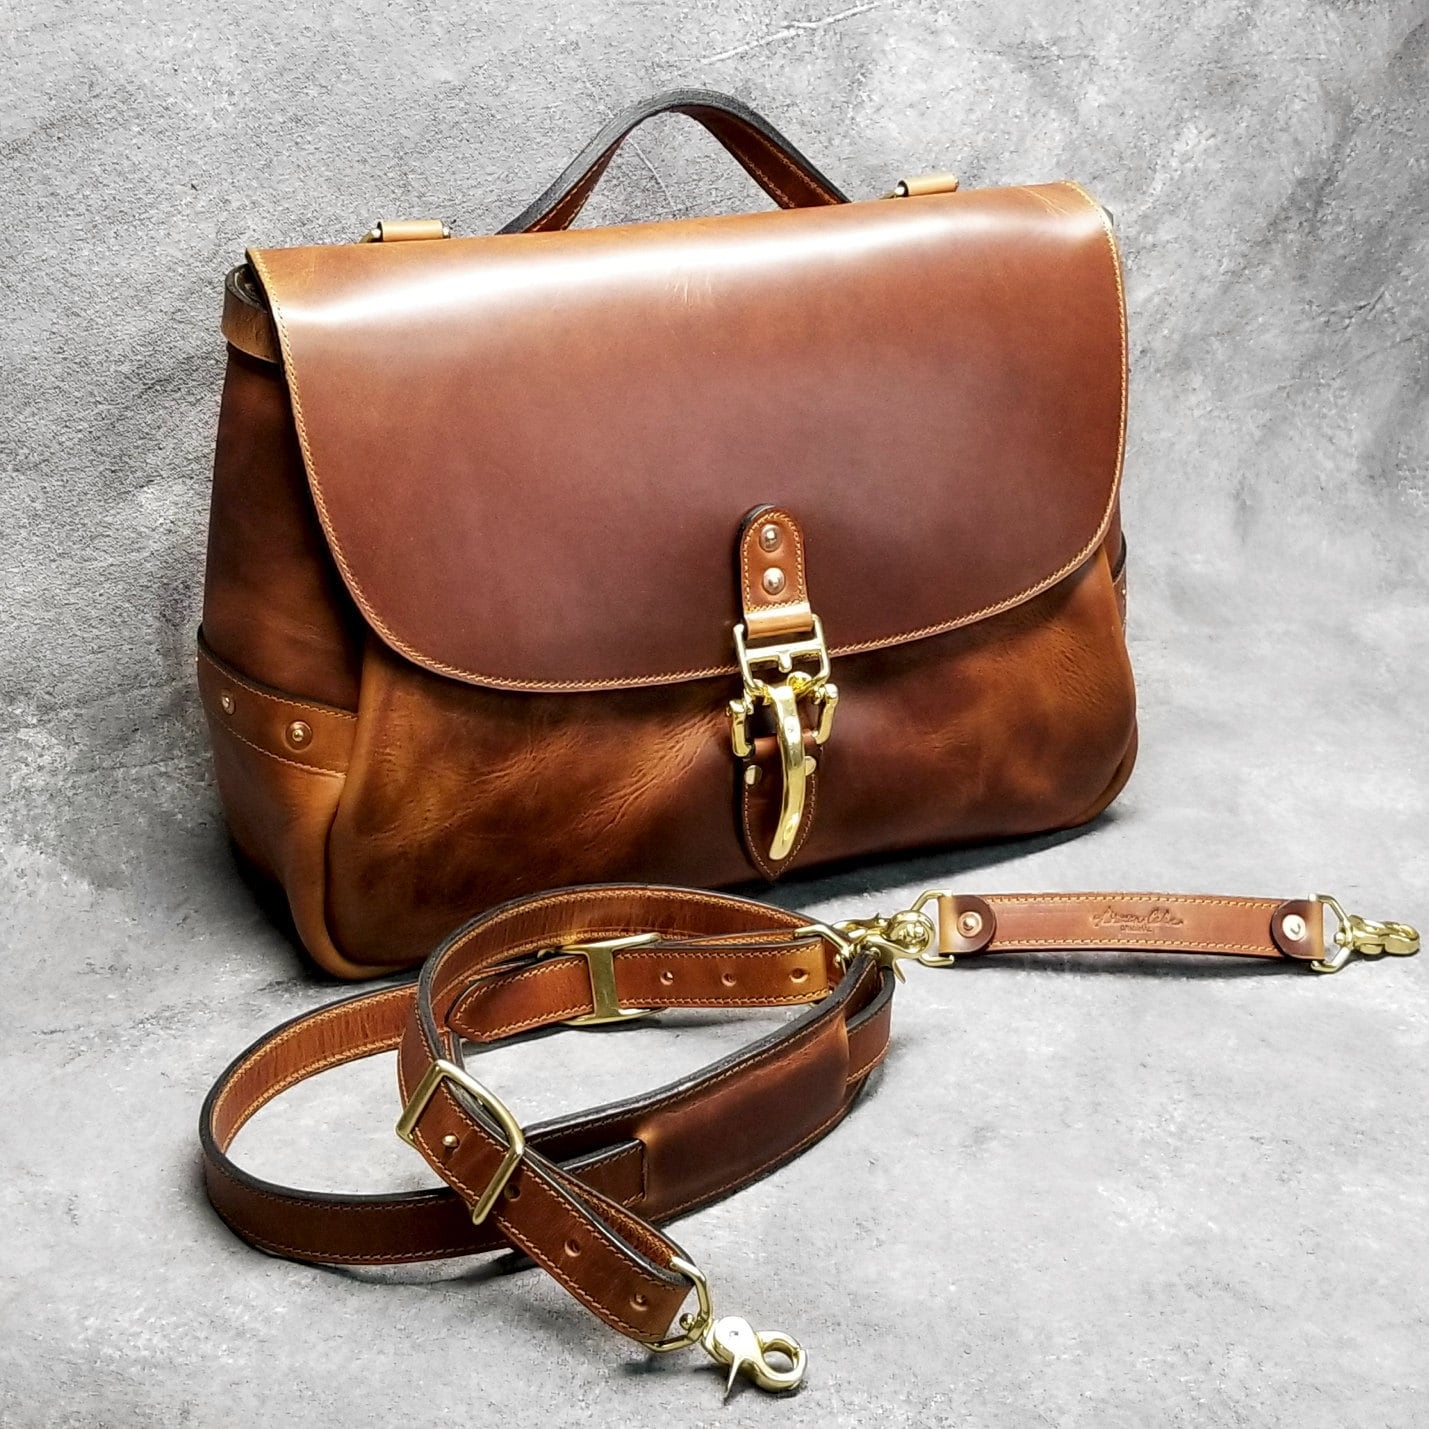 1487d81f7cfd World Class Leather Goods Designed To Last by NormCahnLeatherworks